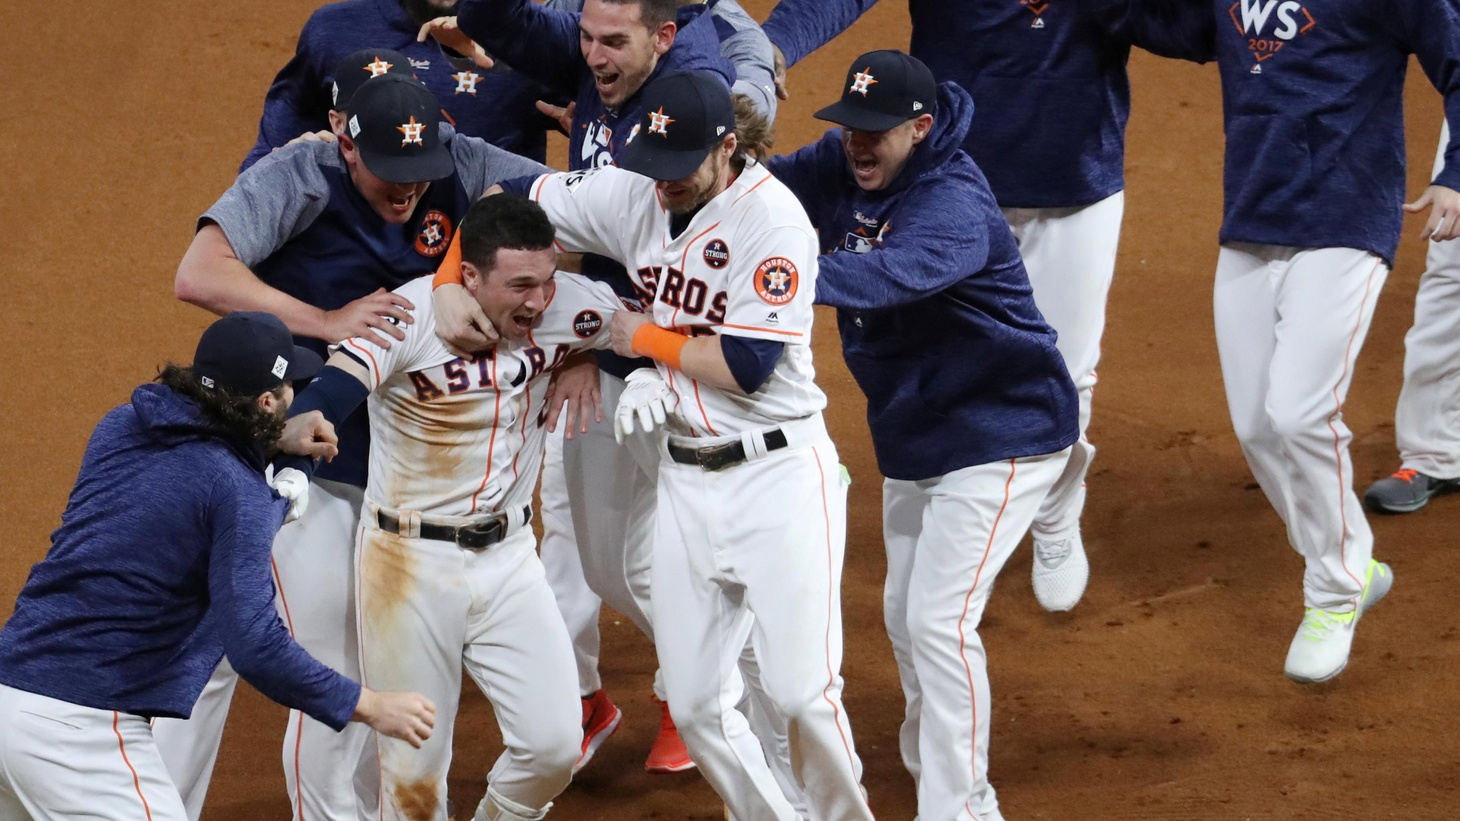 Ten innings… But how many pitching changes… how many lead changes… how many home runs? After last night's fifth game, the Astros lead the Dodgers three games to two in the World Series.